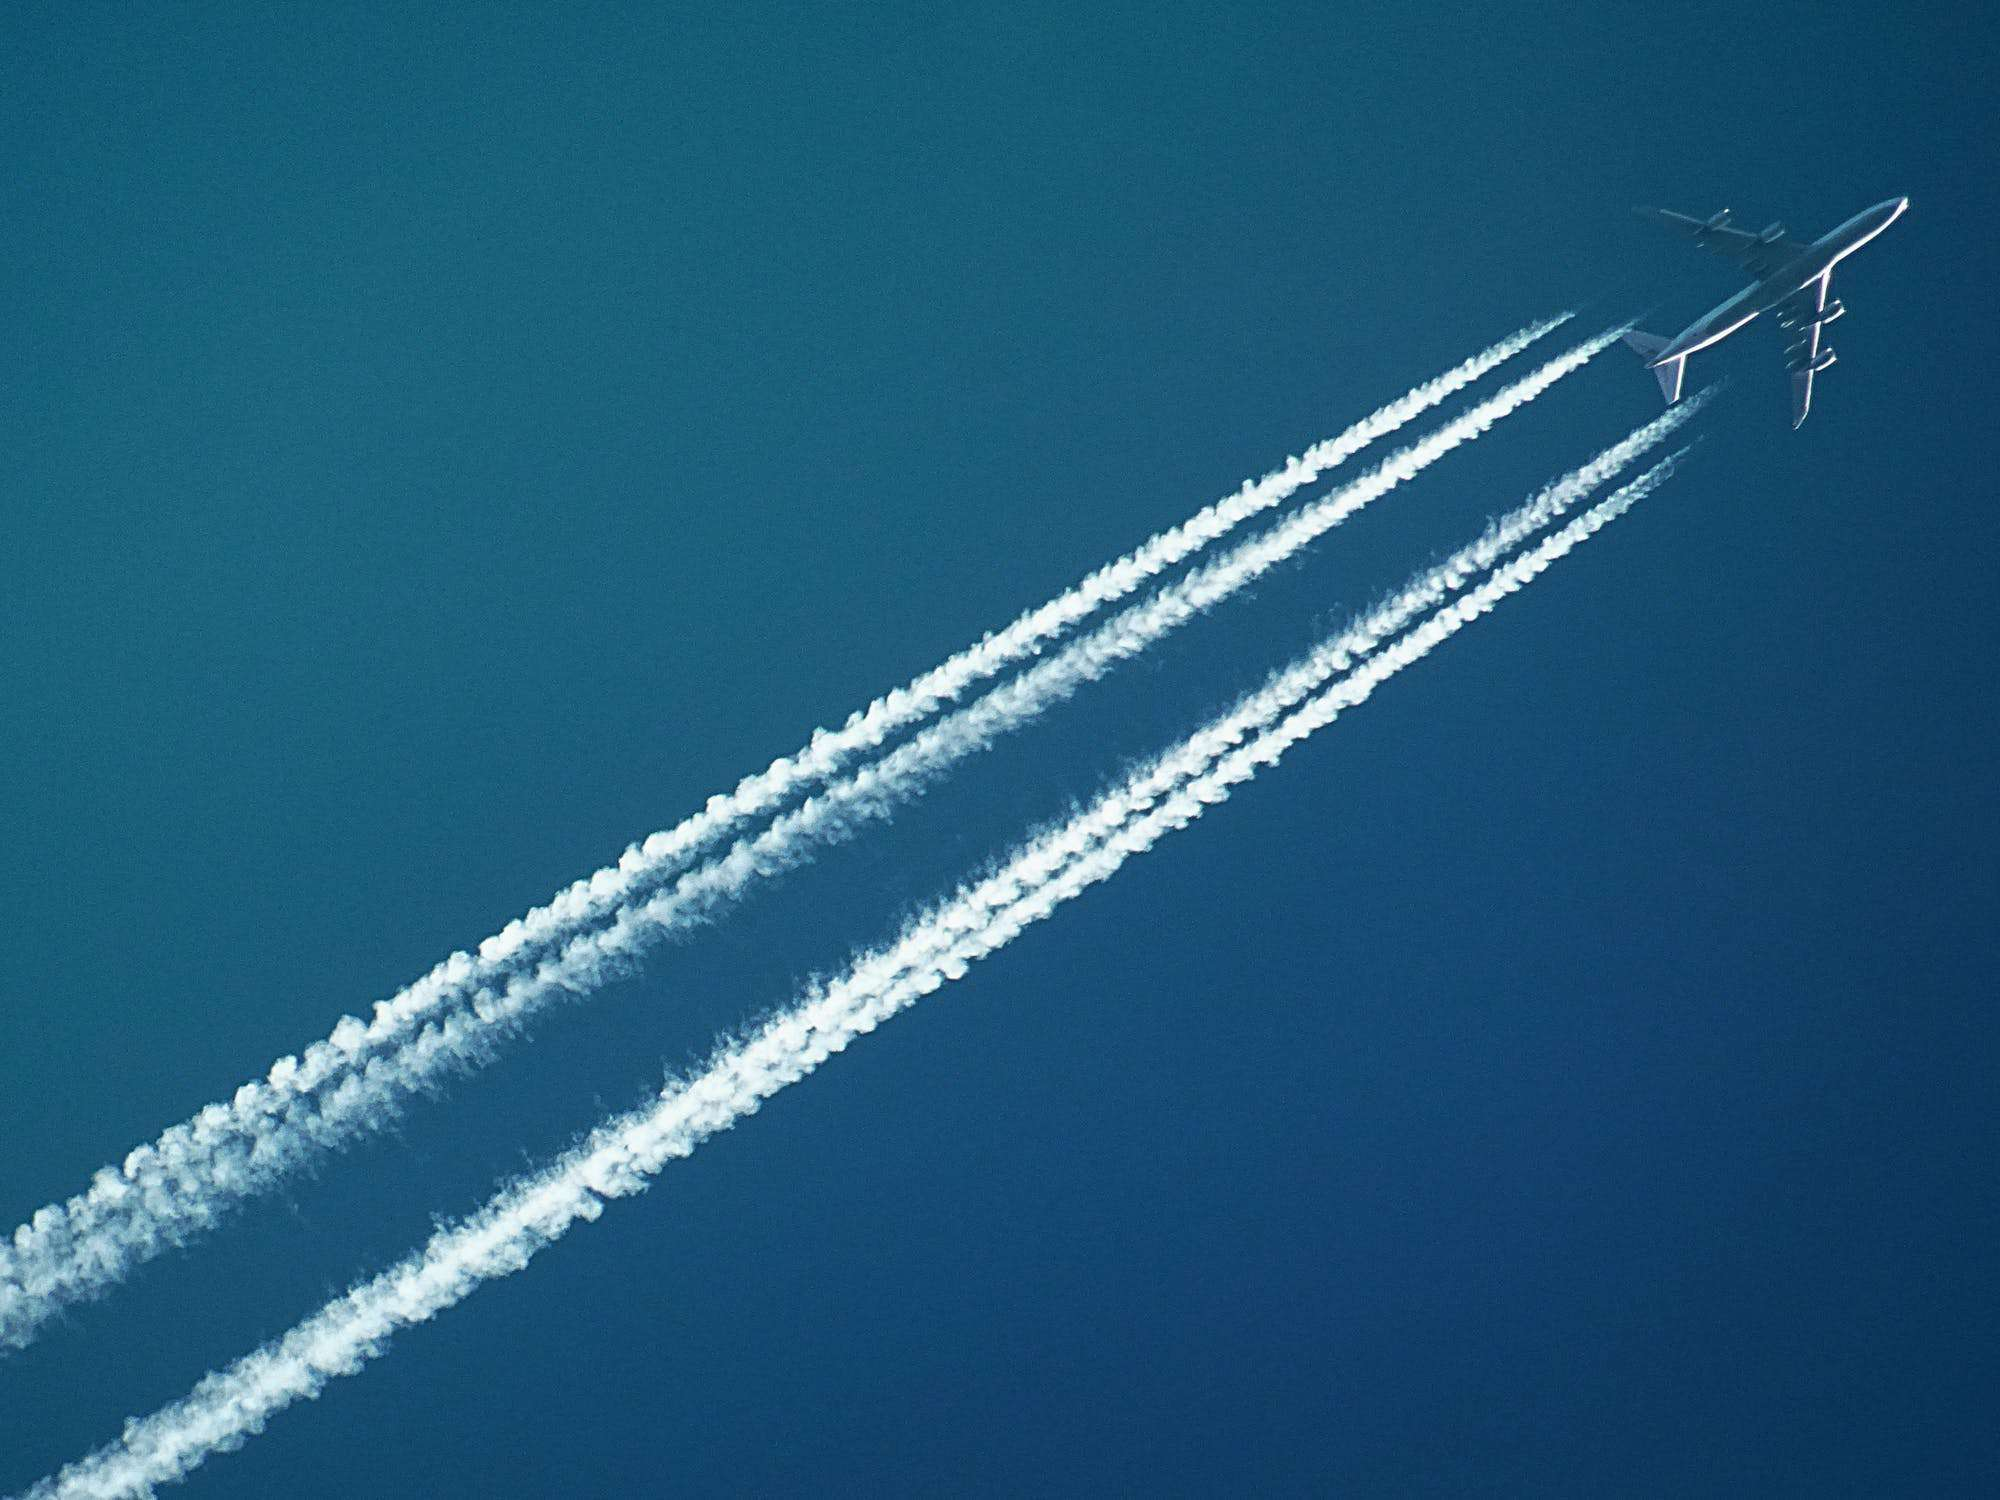 and airplane in the air with contrails